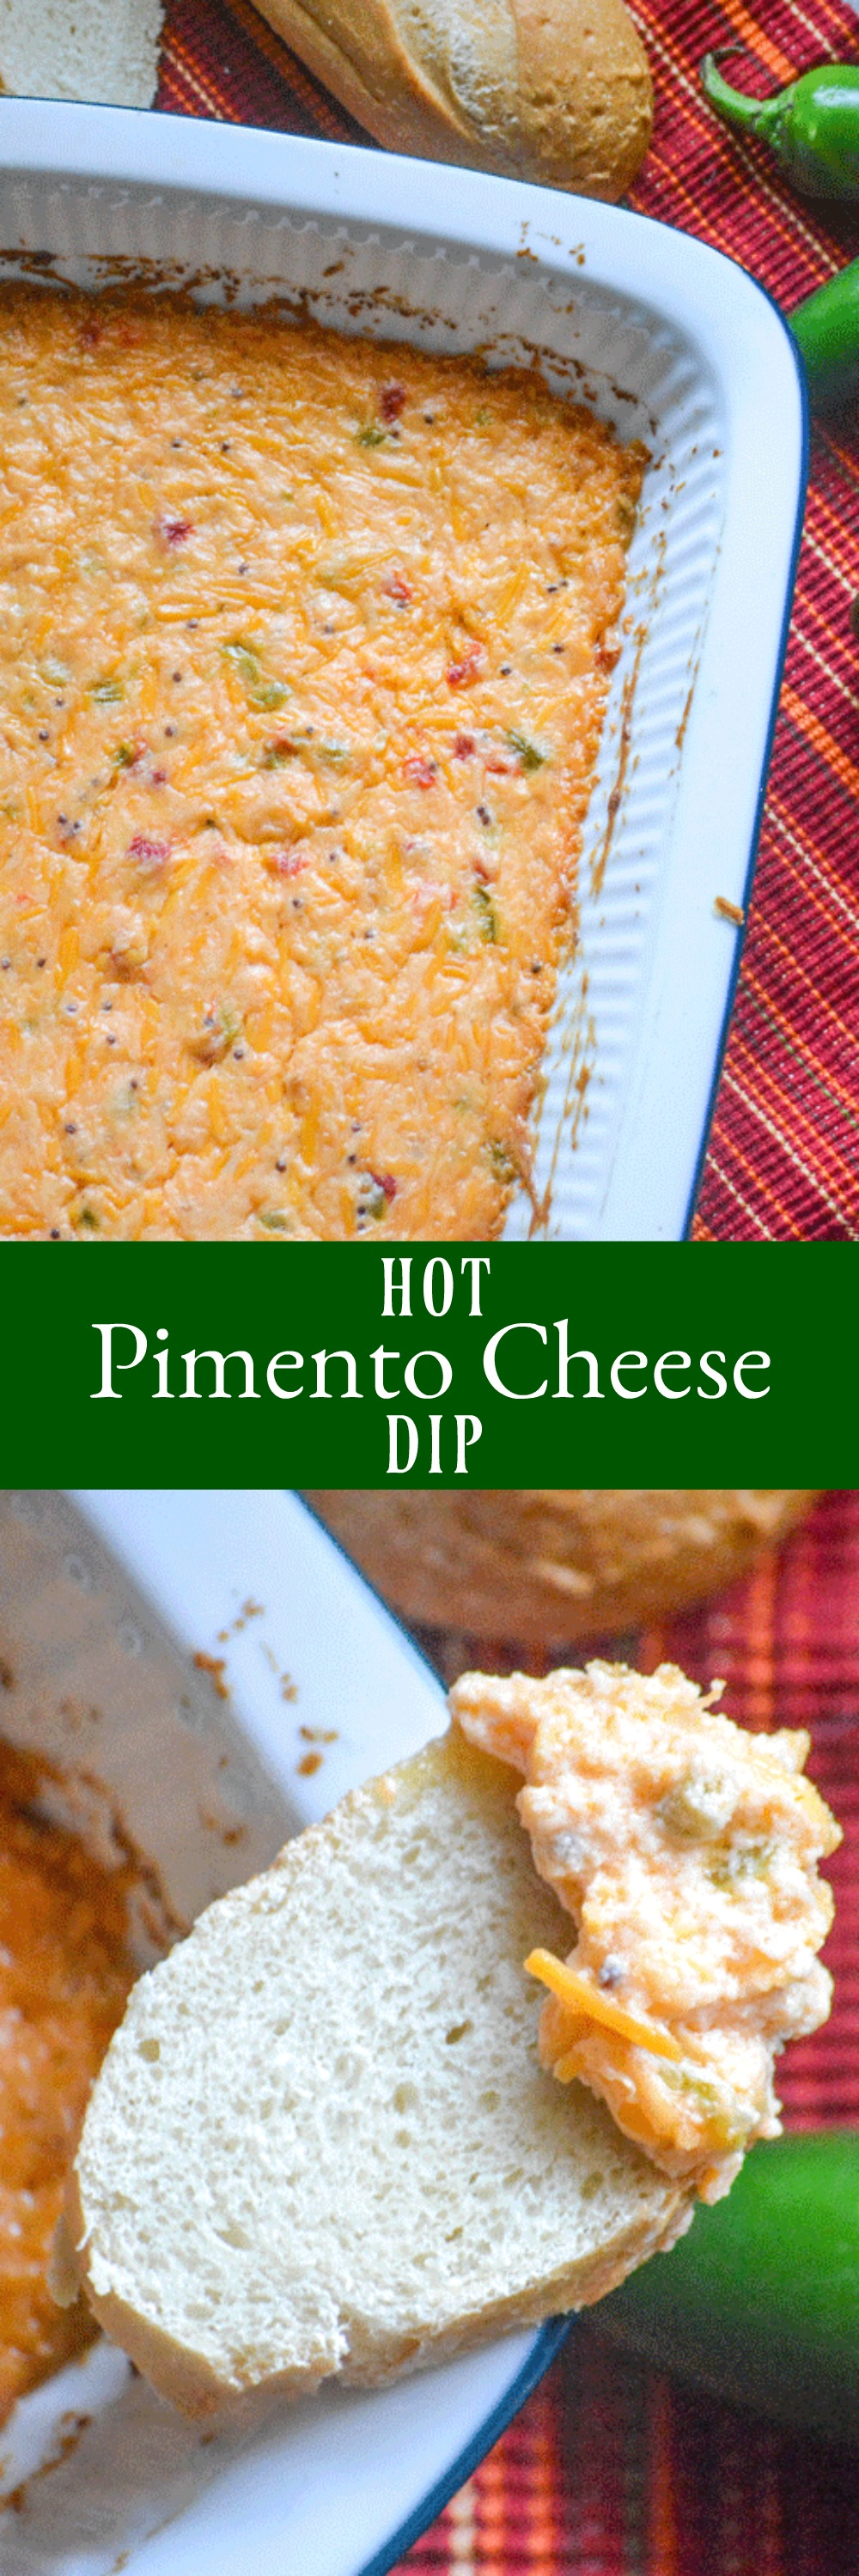 Quick & easy, this creamy Hot Pimento Cheese Dip is a must-have appetizer for Game Day. It's a savory snack, fit for feeding (and filling up) any crowd.